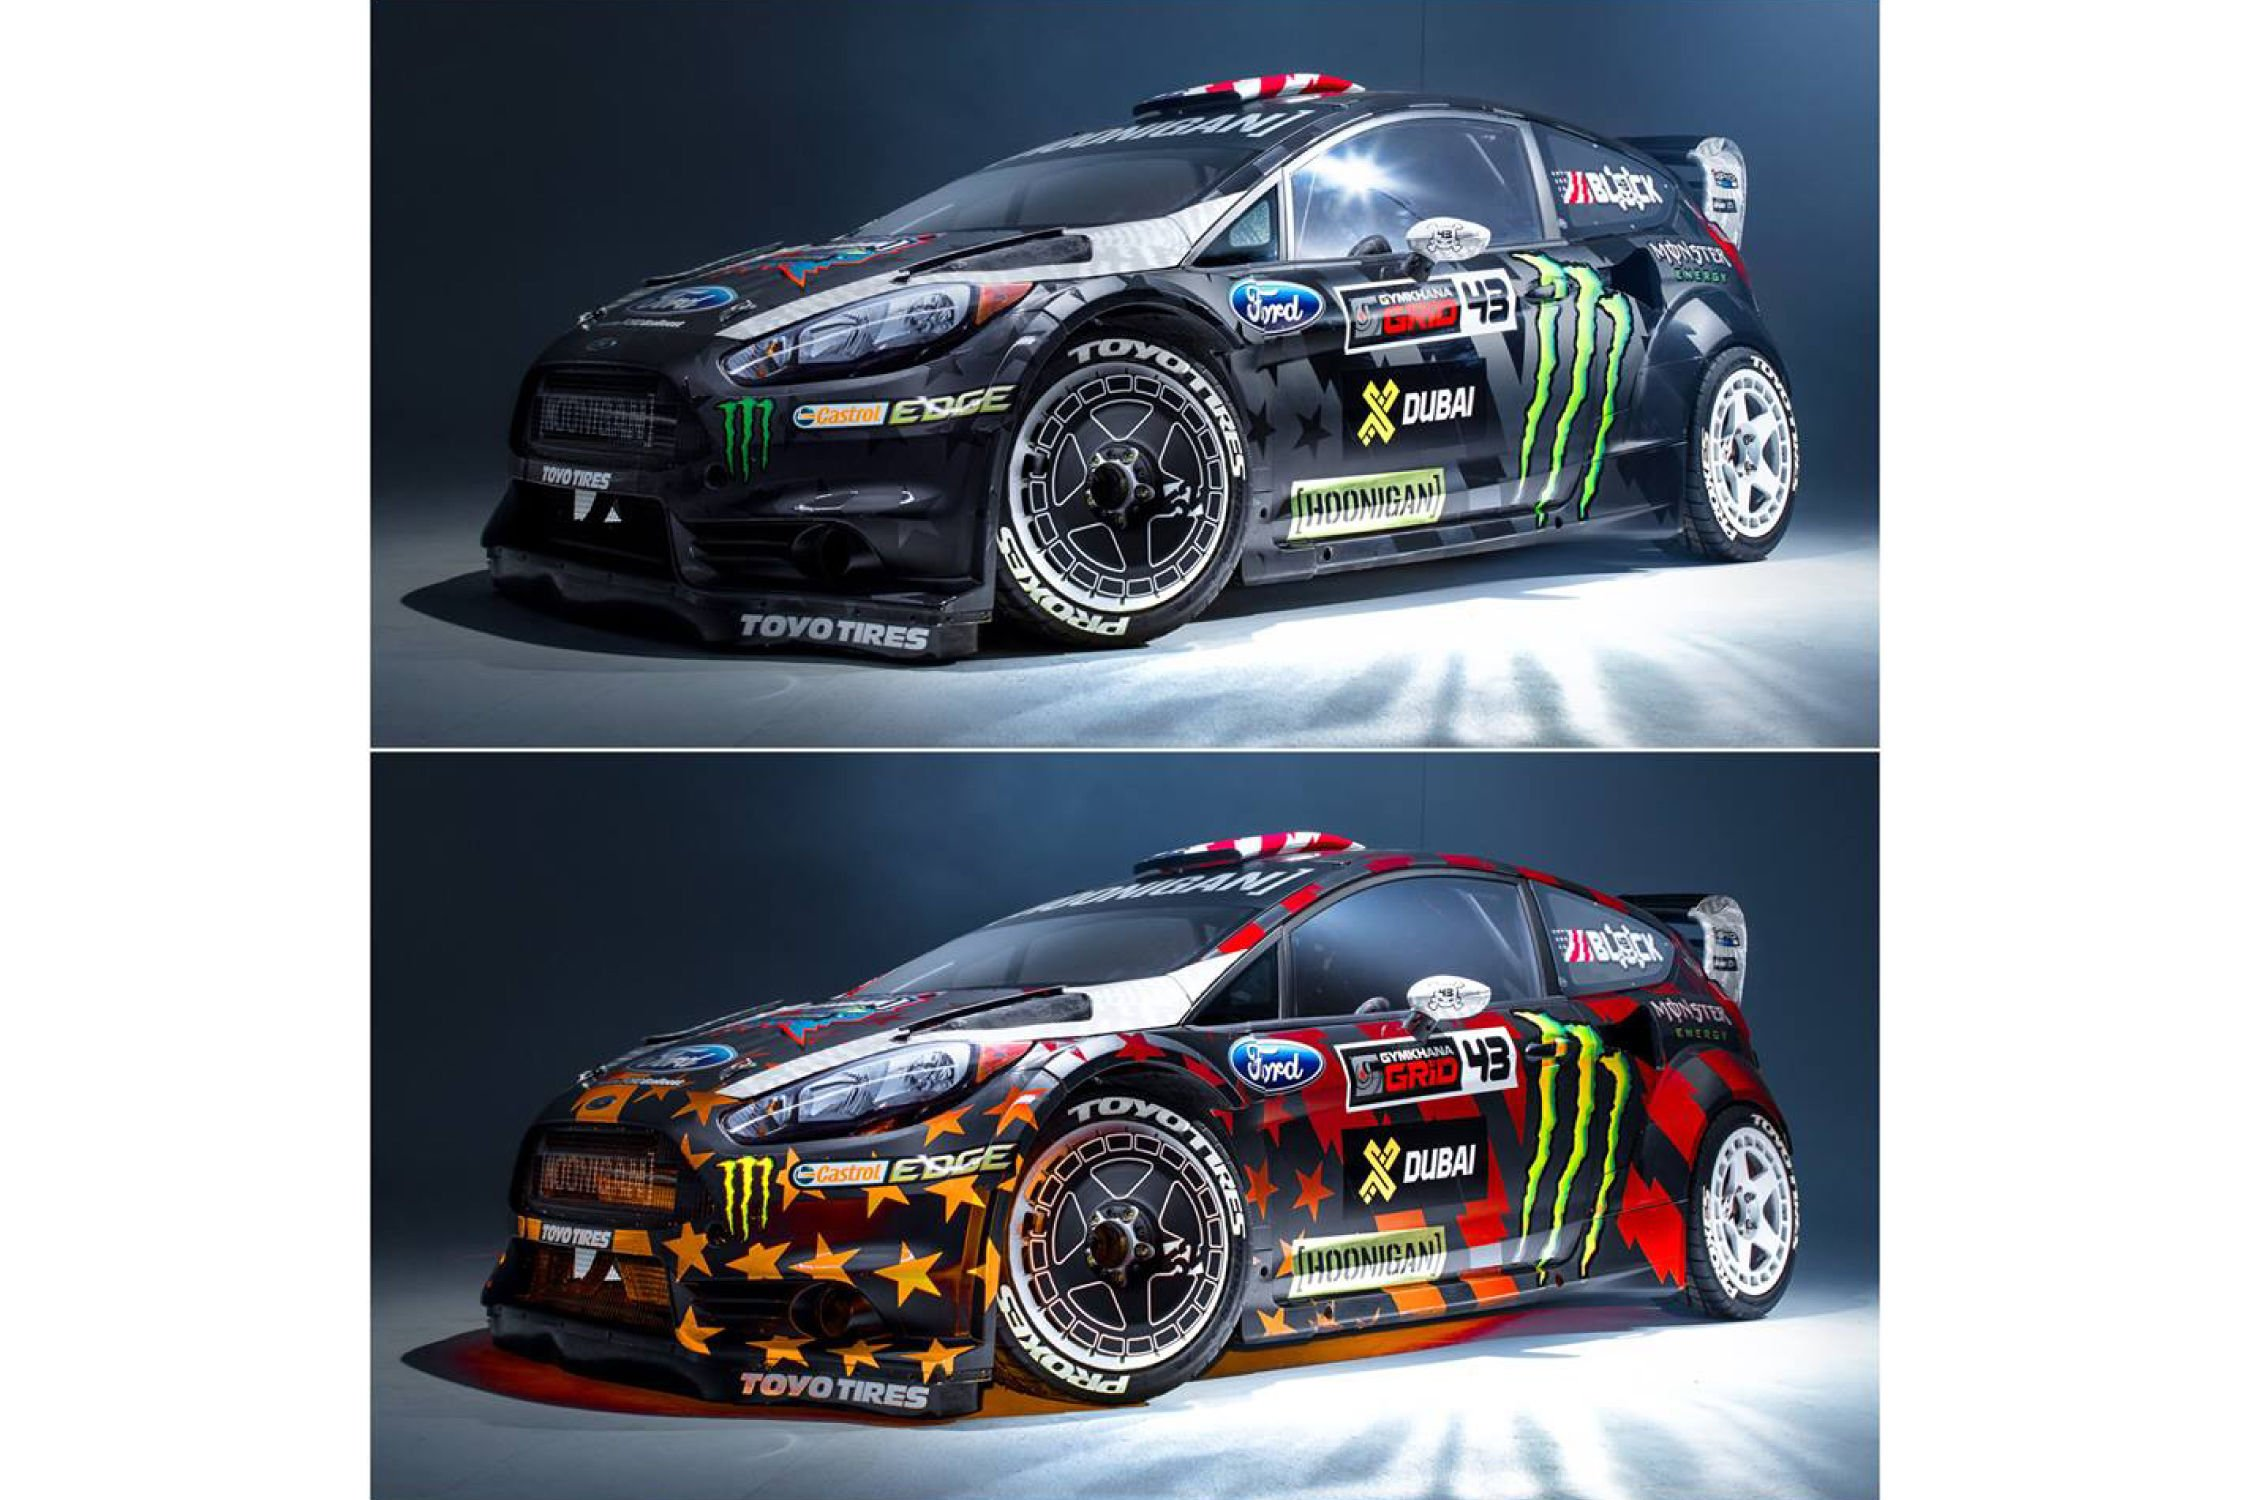 tonnante livr e pour la fiesta st rx43 de ken block actualit automobile motorlegend. Black Bedroom Furniture Sets. Home Design Ideas